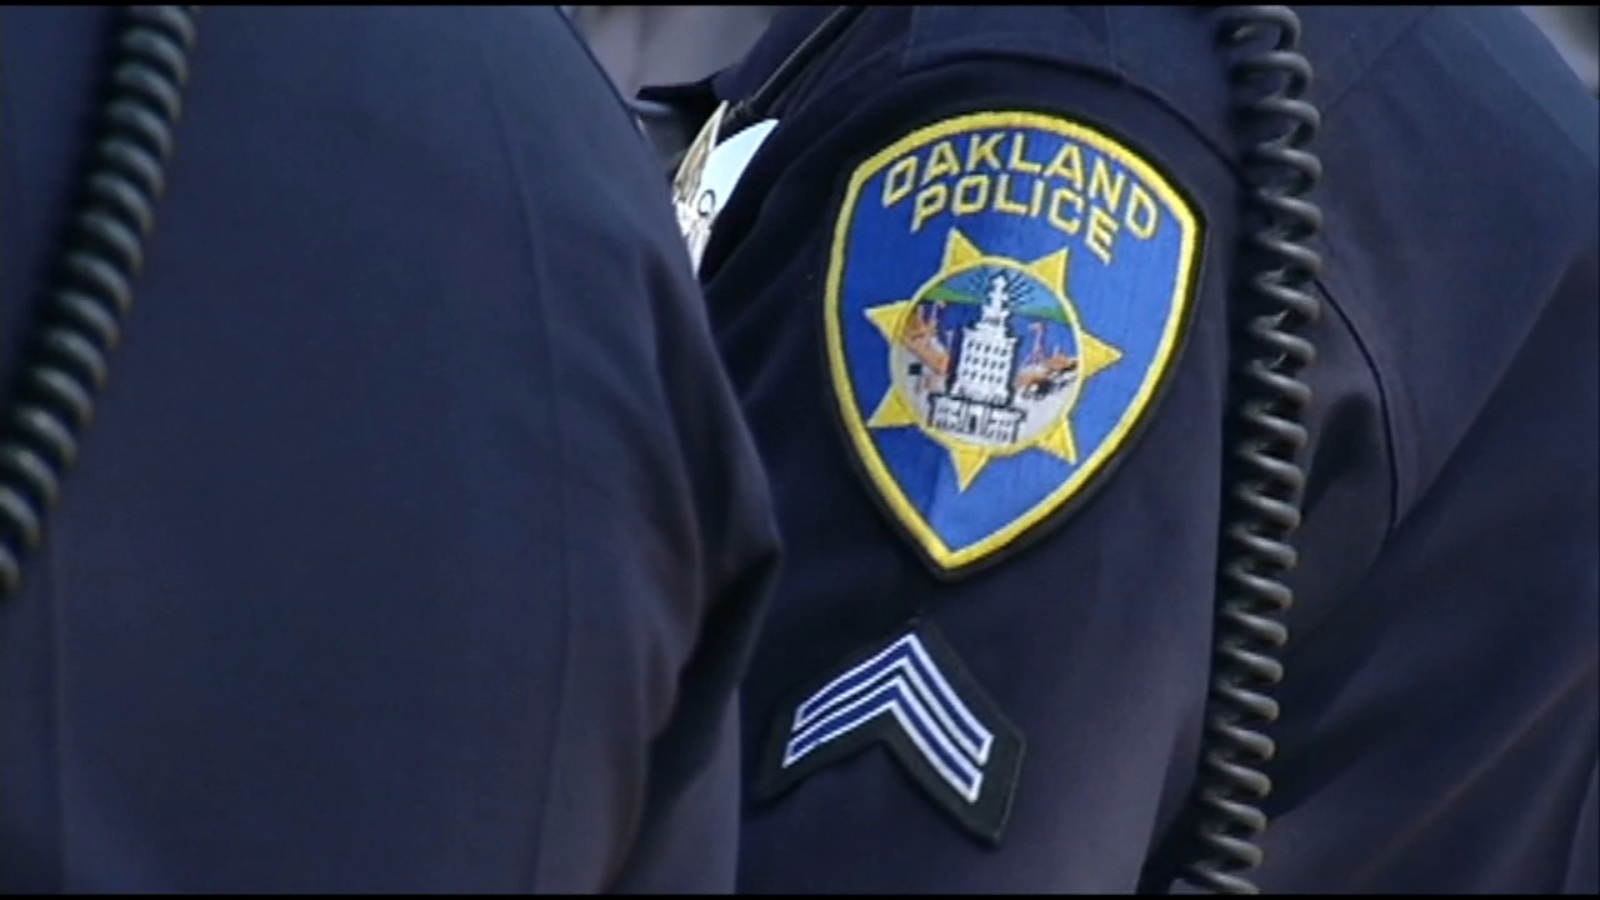 abc7news.com: What is law enforcement doing to crack down on violent crime in Oakland? Police chief, DA explain